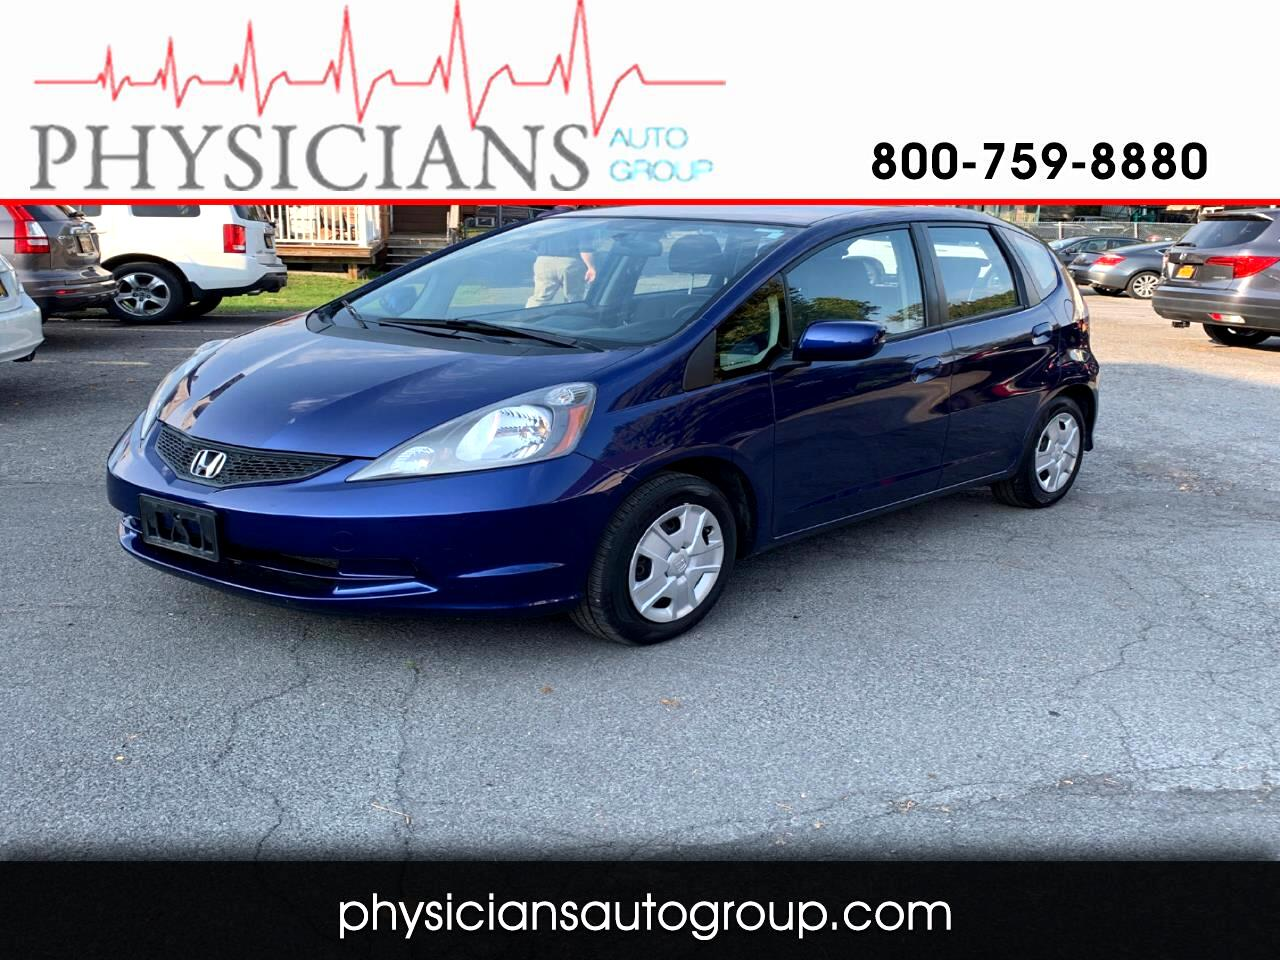 Honda Fit 5dr HB Man 2013